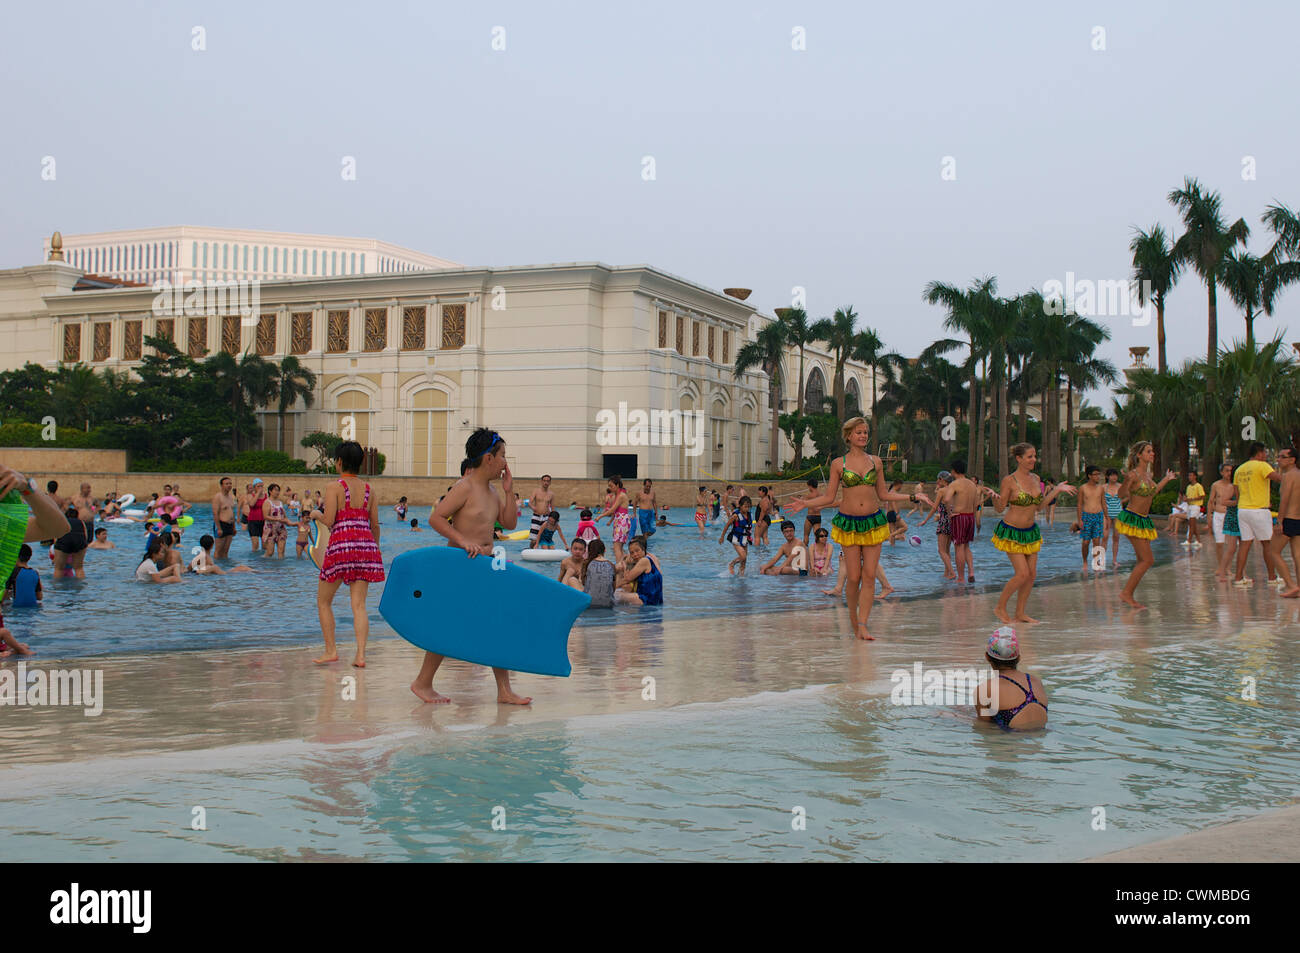 The Wave Pool At The Galaxy Hotel In Macau China Stock Photo